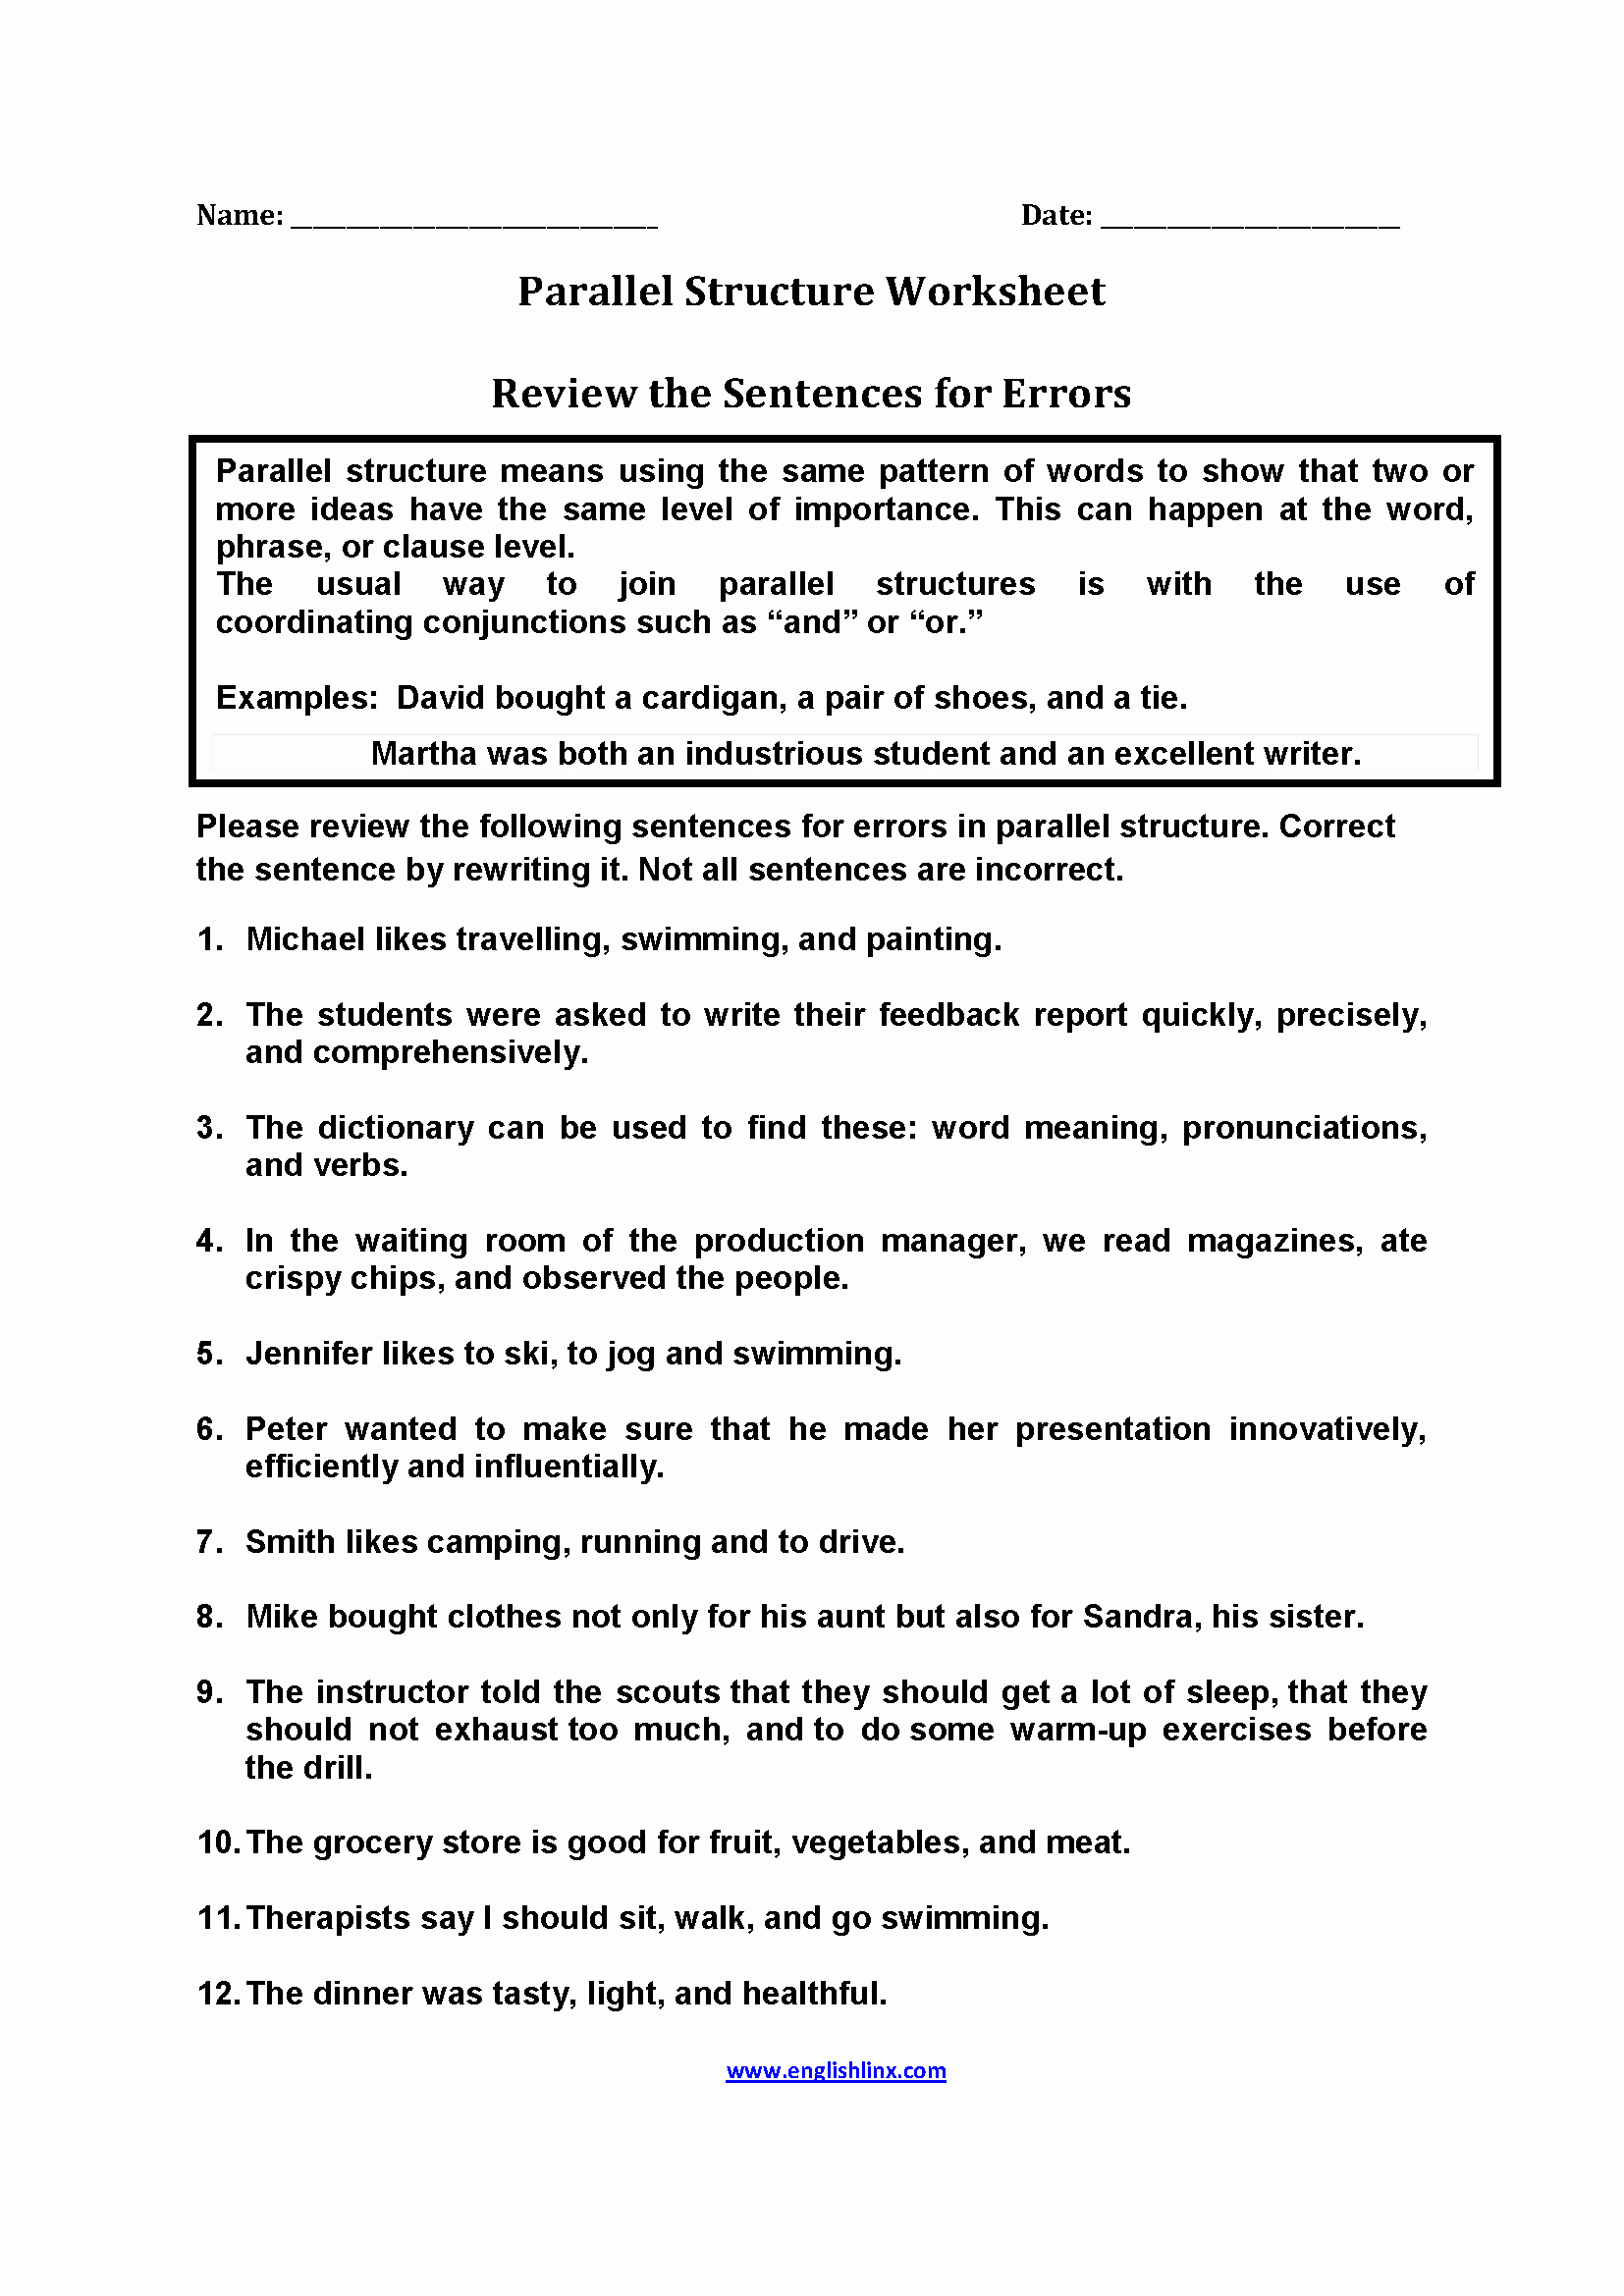 Parallel Structure Worksheet with Answers Awesome Review Sentences for Errors Parallel Structure Worksheets